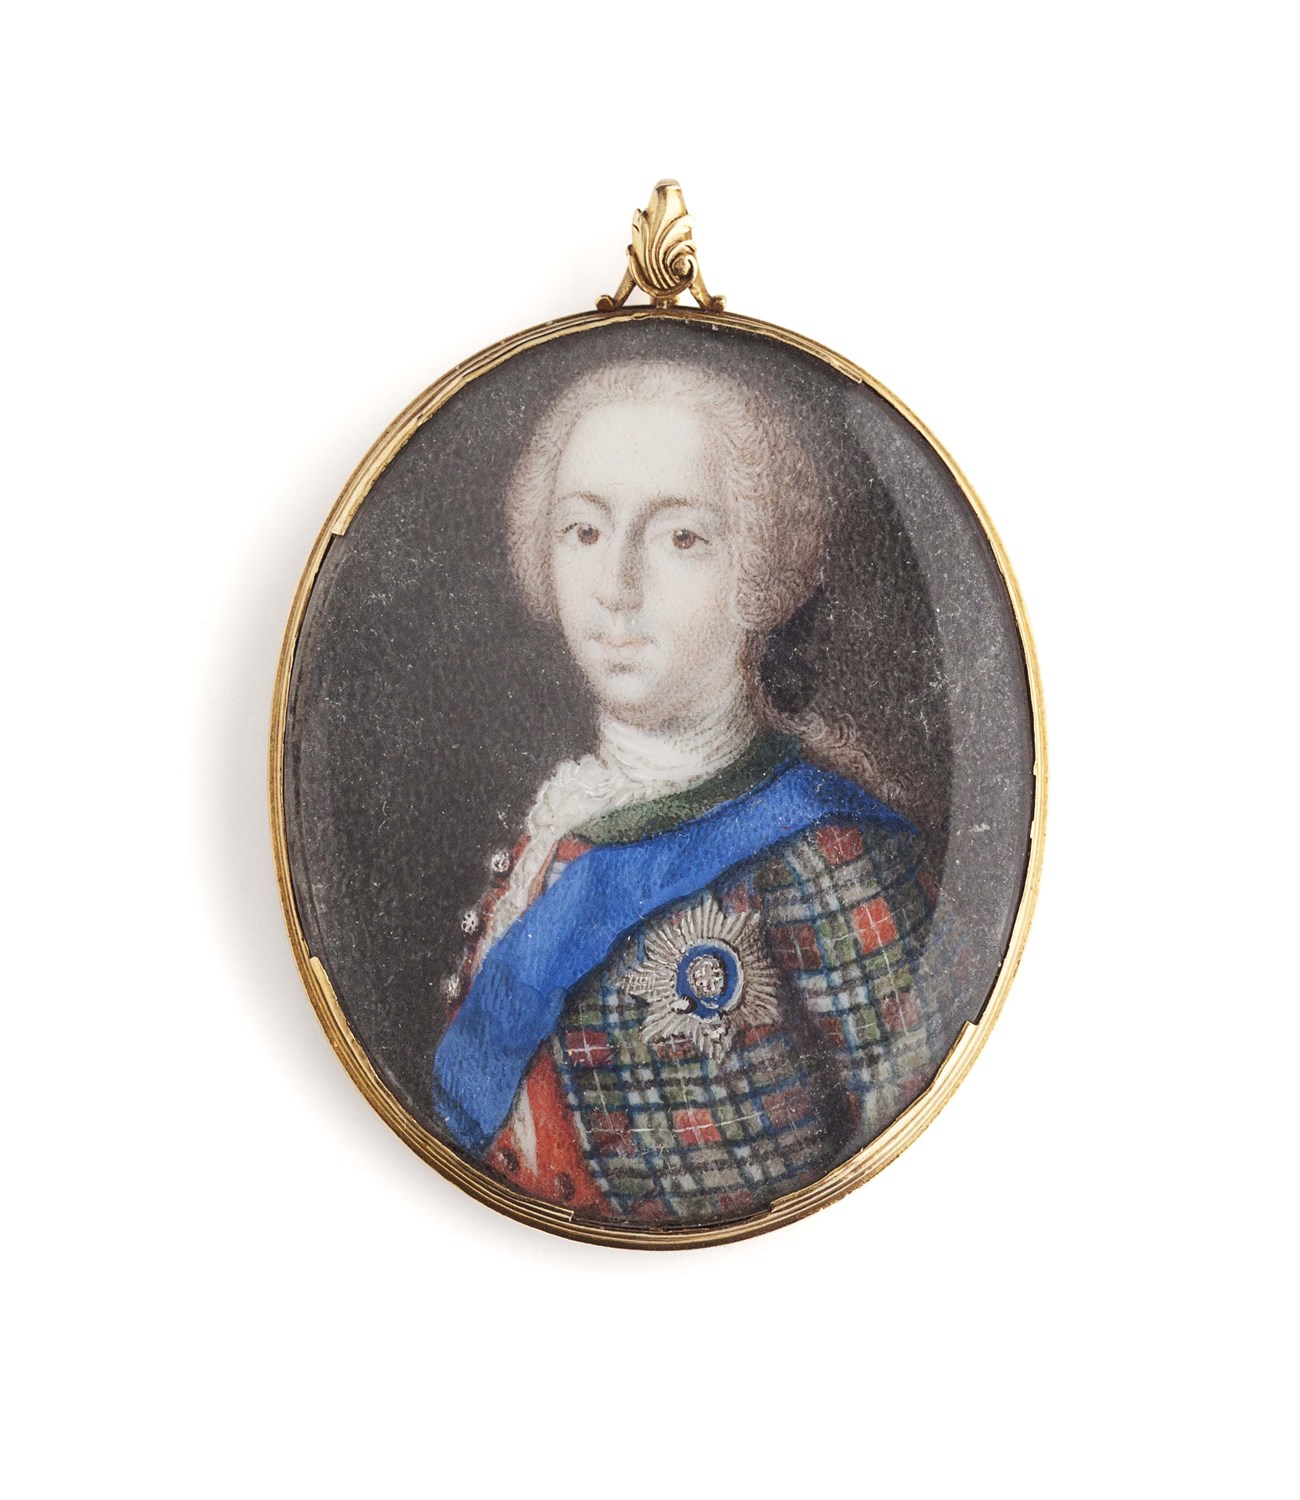 Lot 4-Attributed to Charles Dixon - An 18th century portrait miniature of Prince Charles Edward Stuart